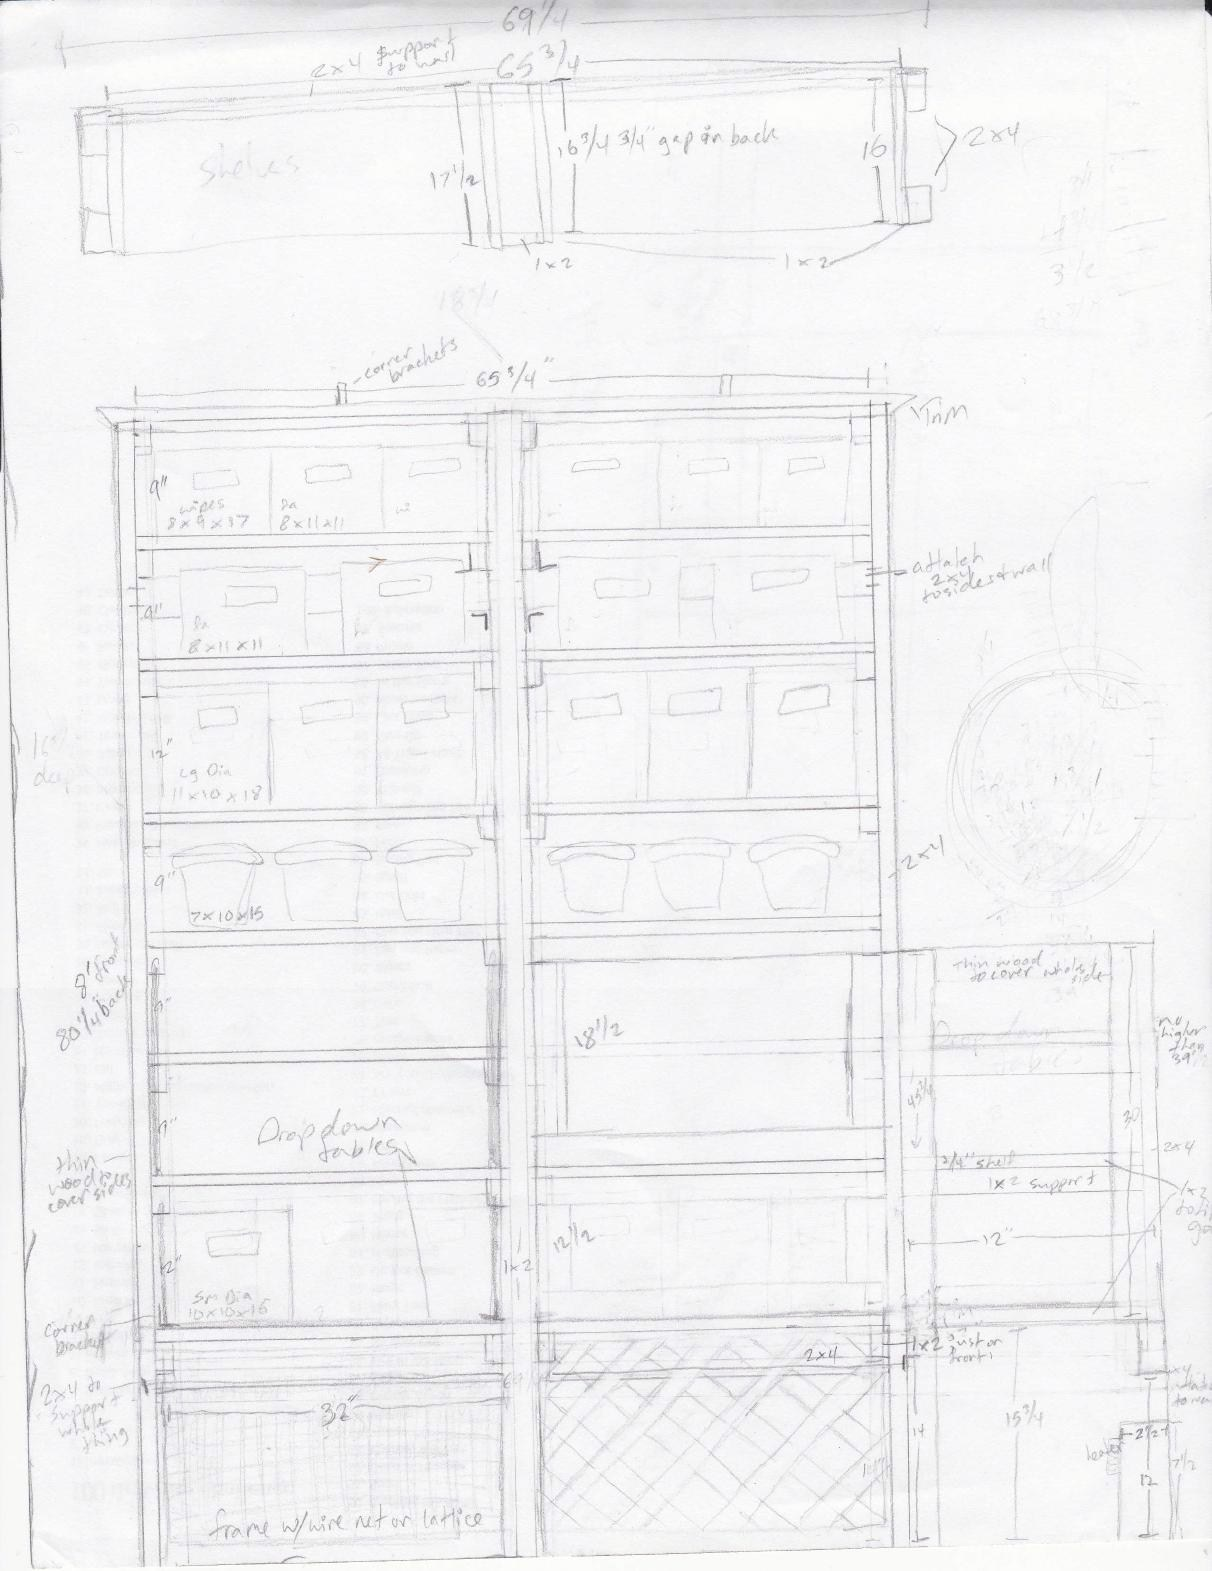 tags: #open kitchen plans#bookcase woodworking plans#as open bookcase  wall#open floor plans#diy console table#diy corner bookcase#diy open  shelving#open